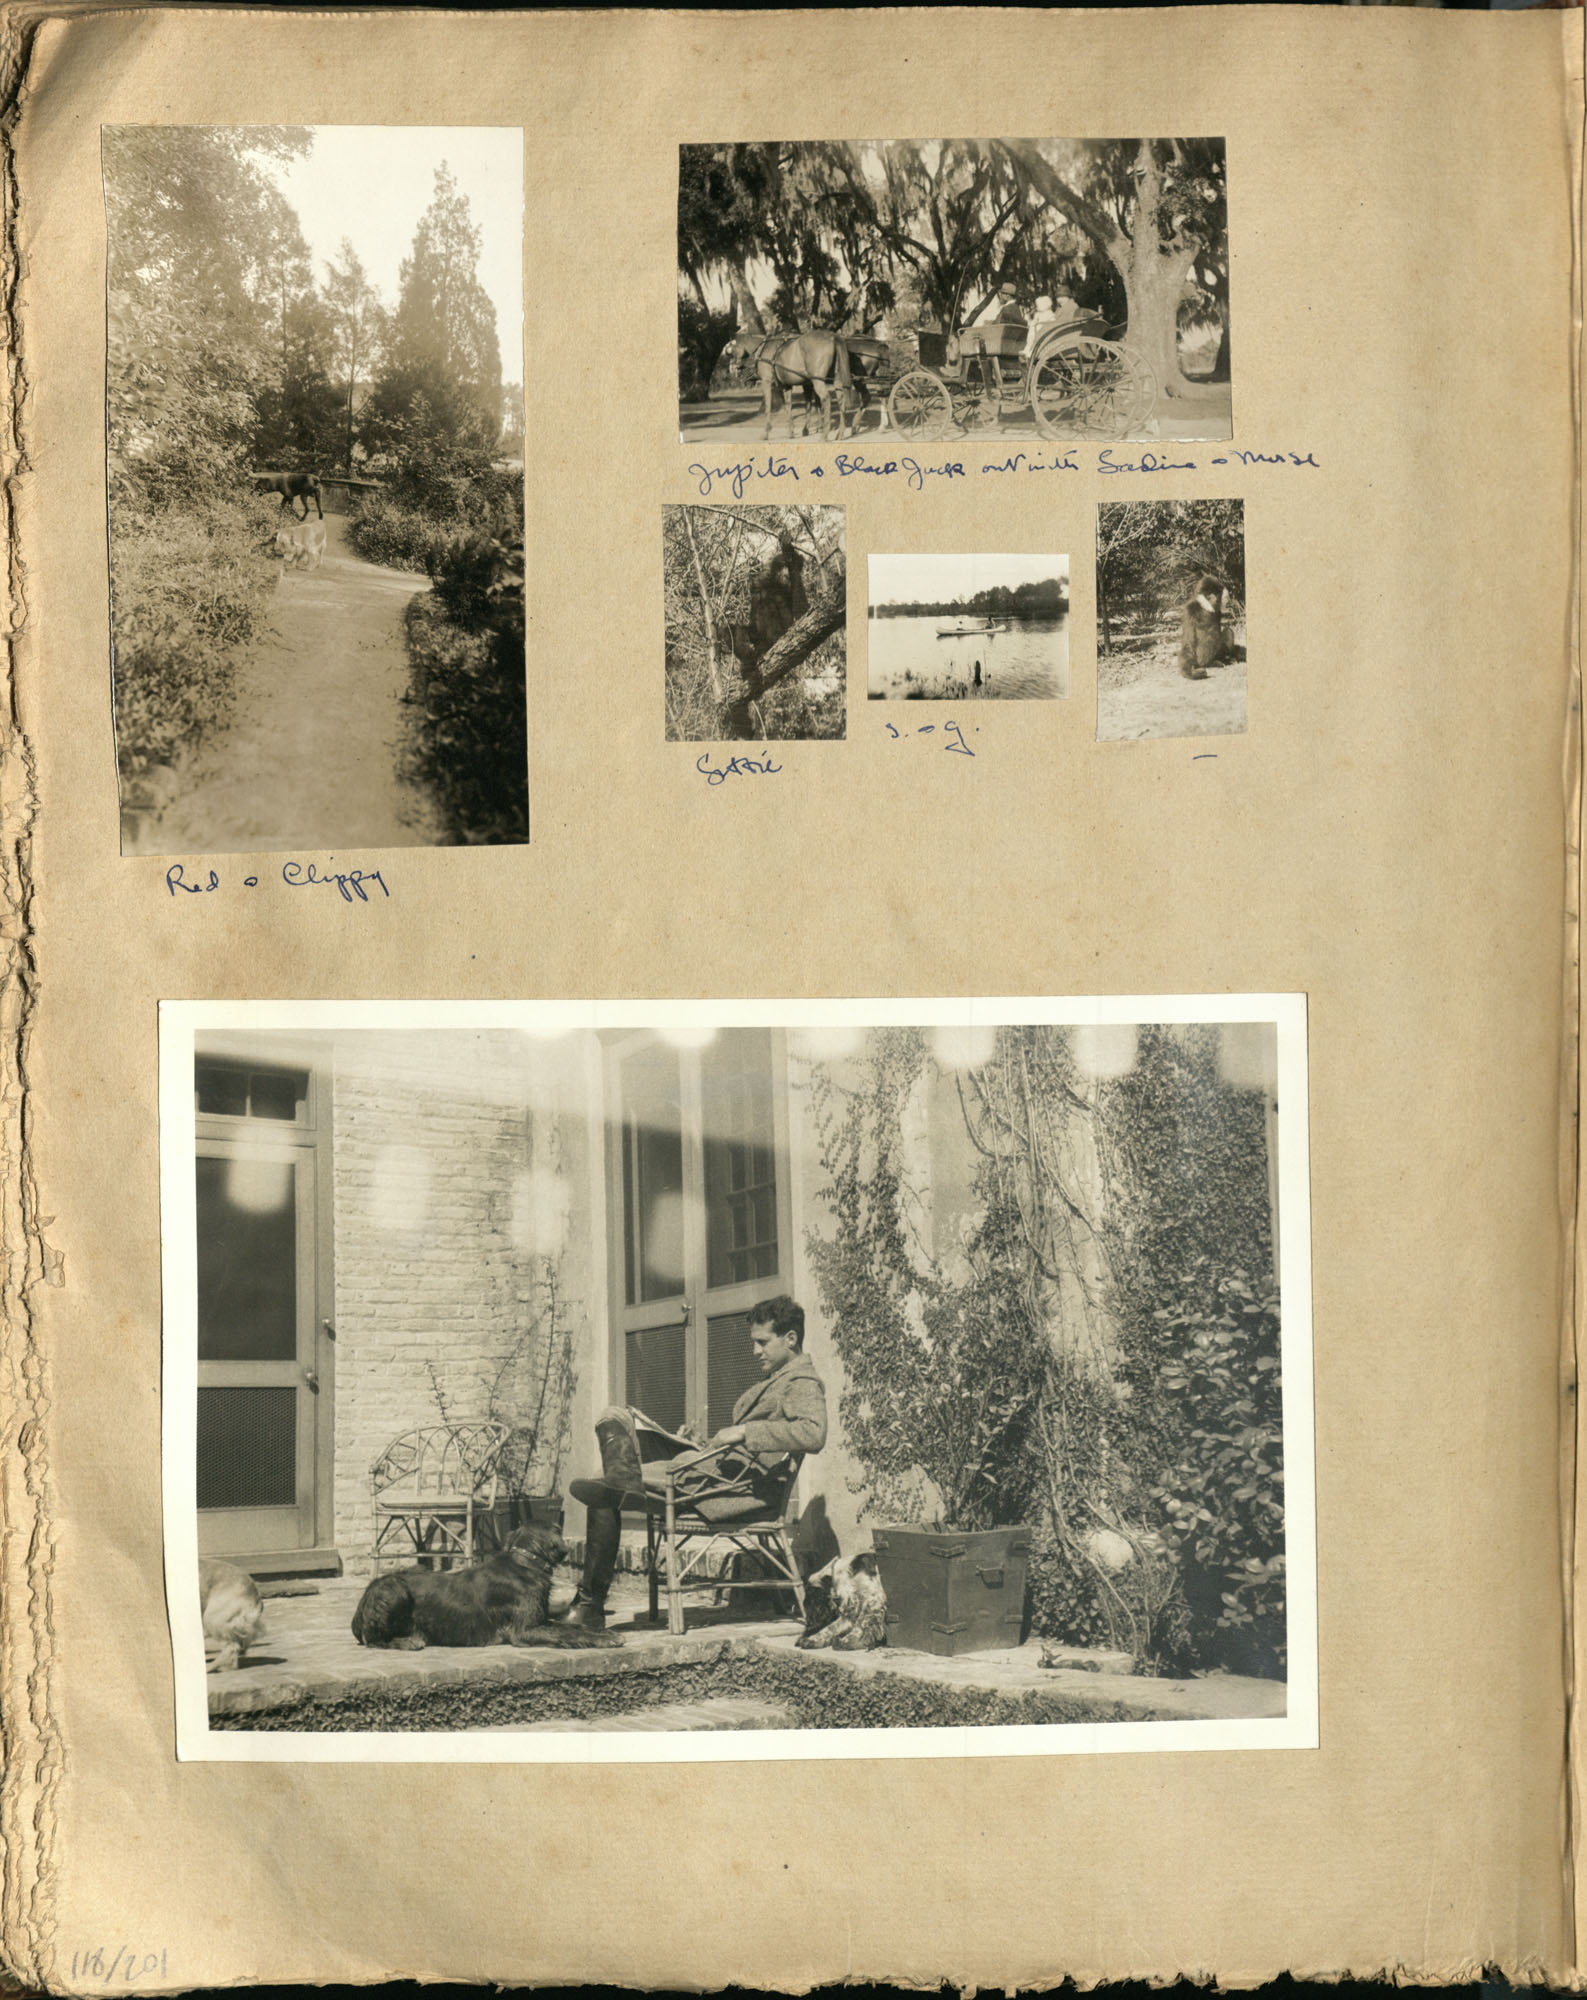 Early Medway and travels album, 1929-1937, page 118